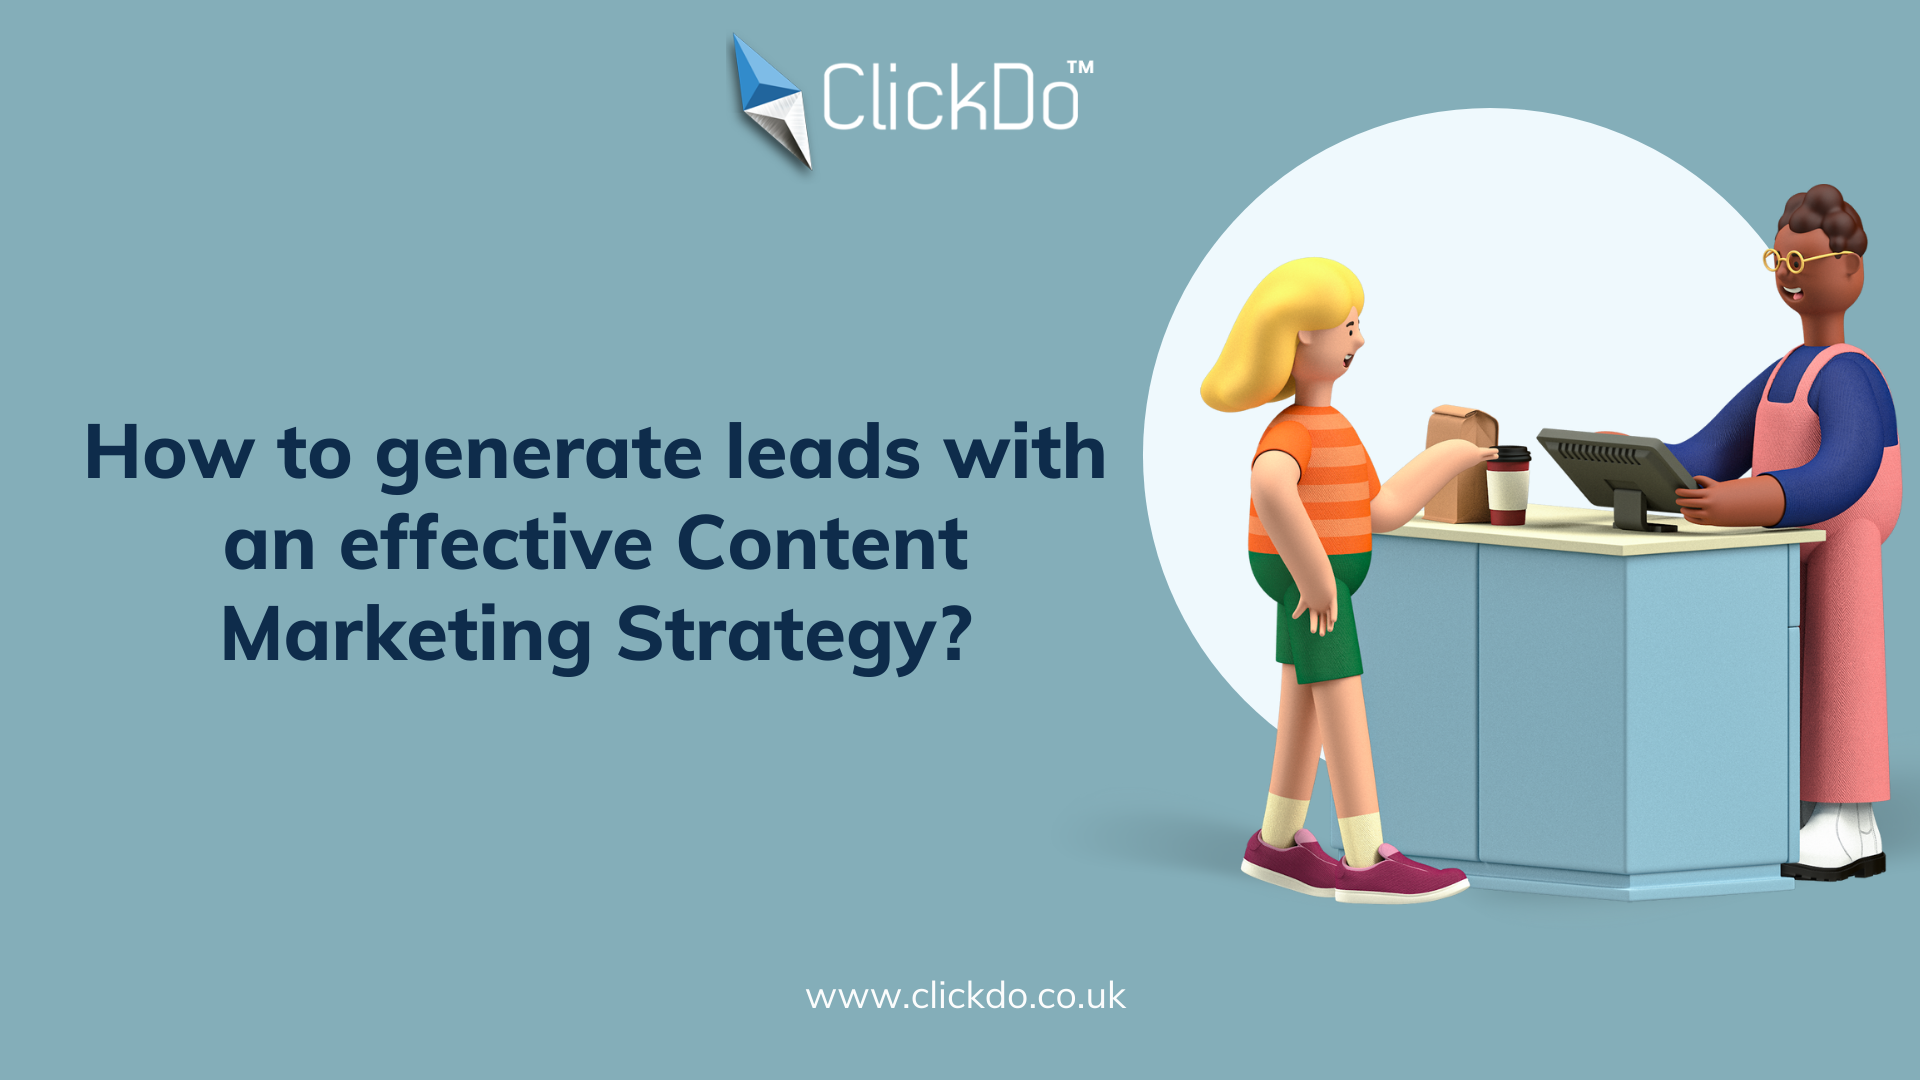 How to generate leads with an effective Content Marketing Strategy